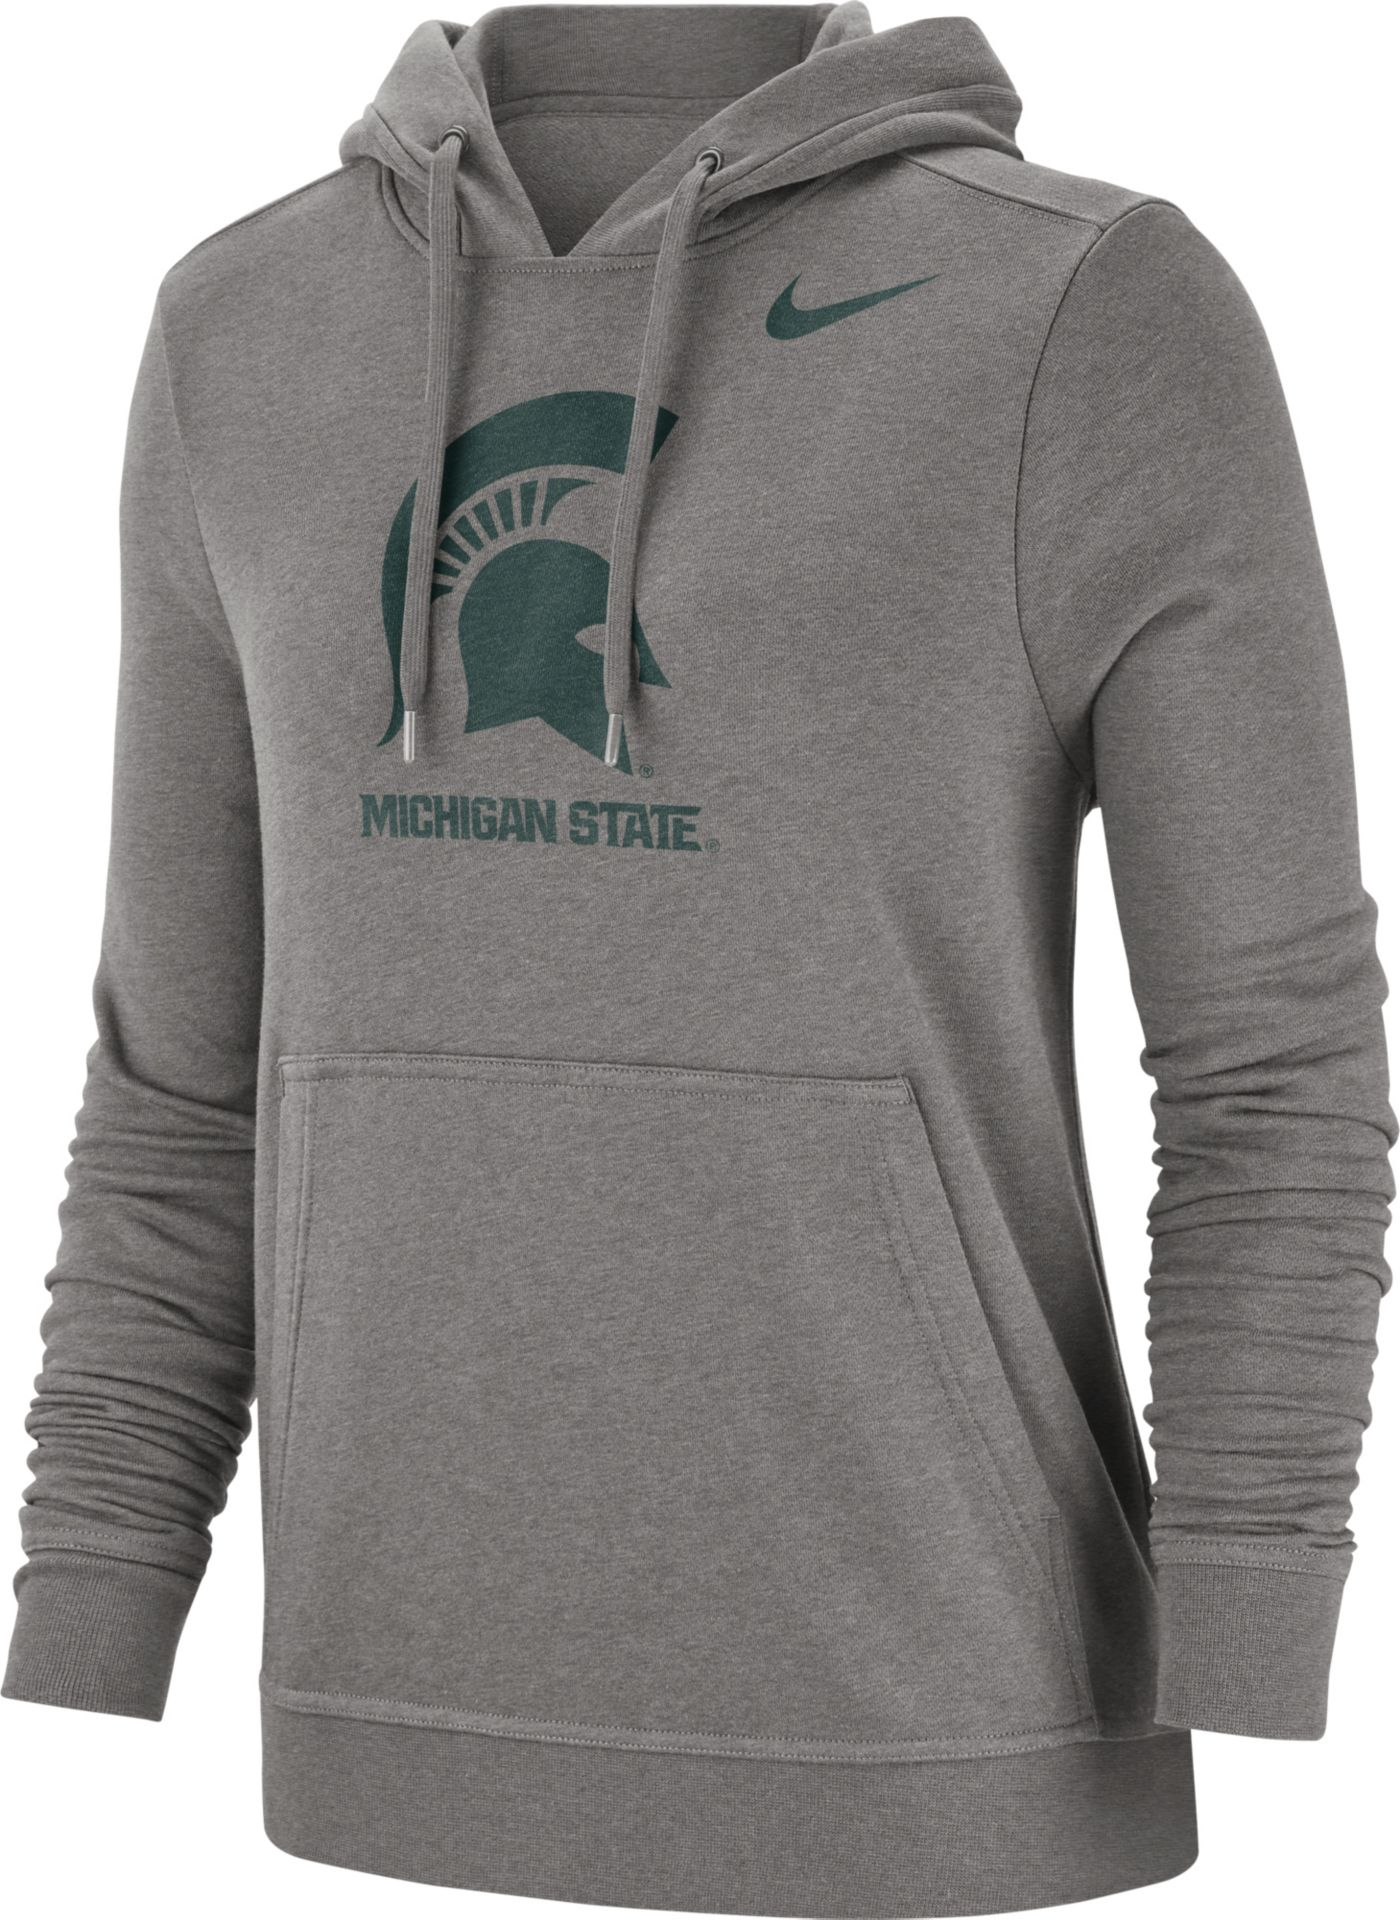 Nike Women's Michigan State Spartans Grey Club Fleece Pullover Hoodie